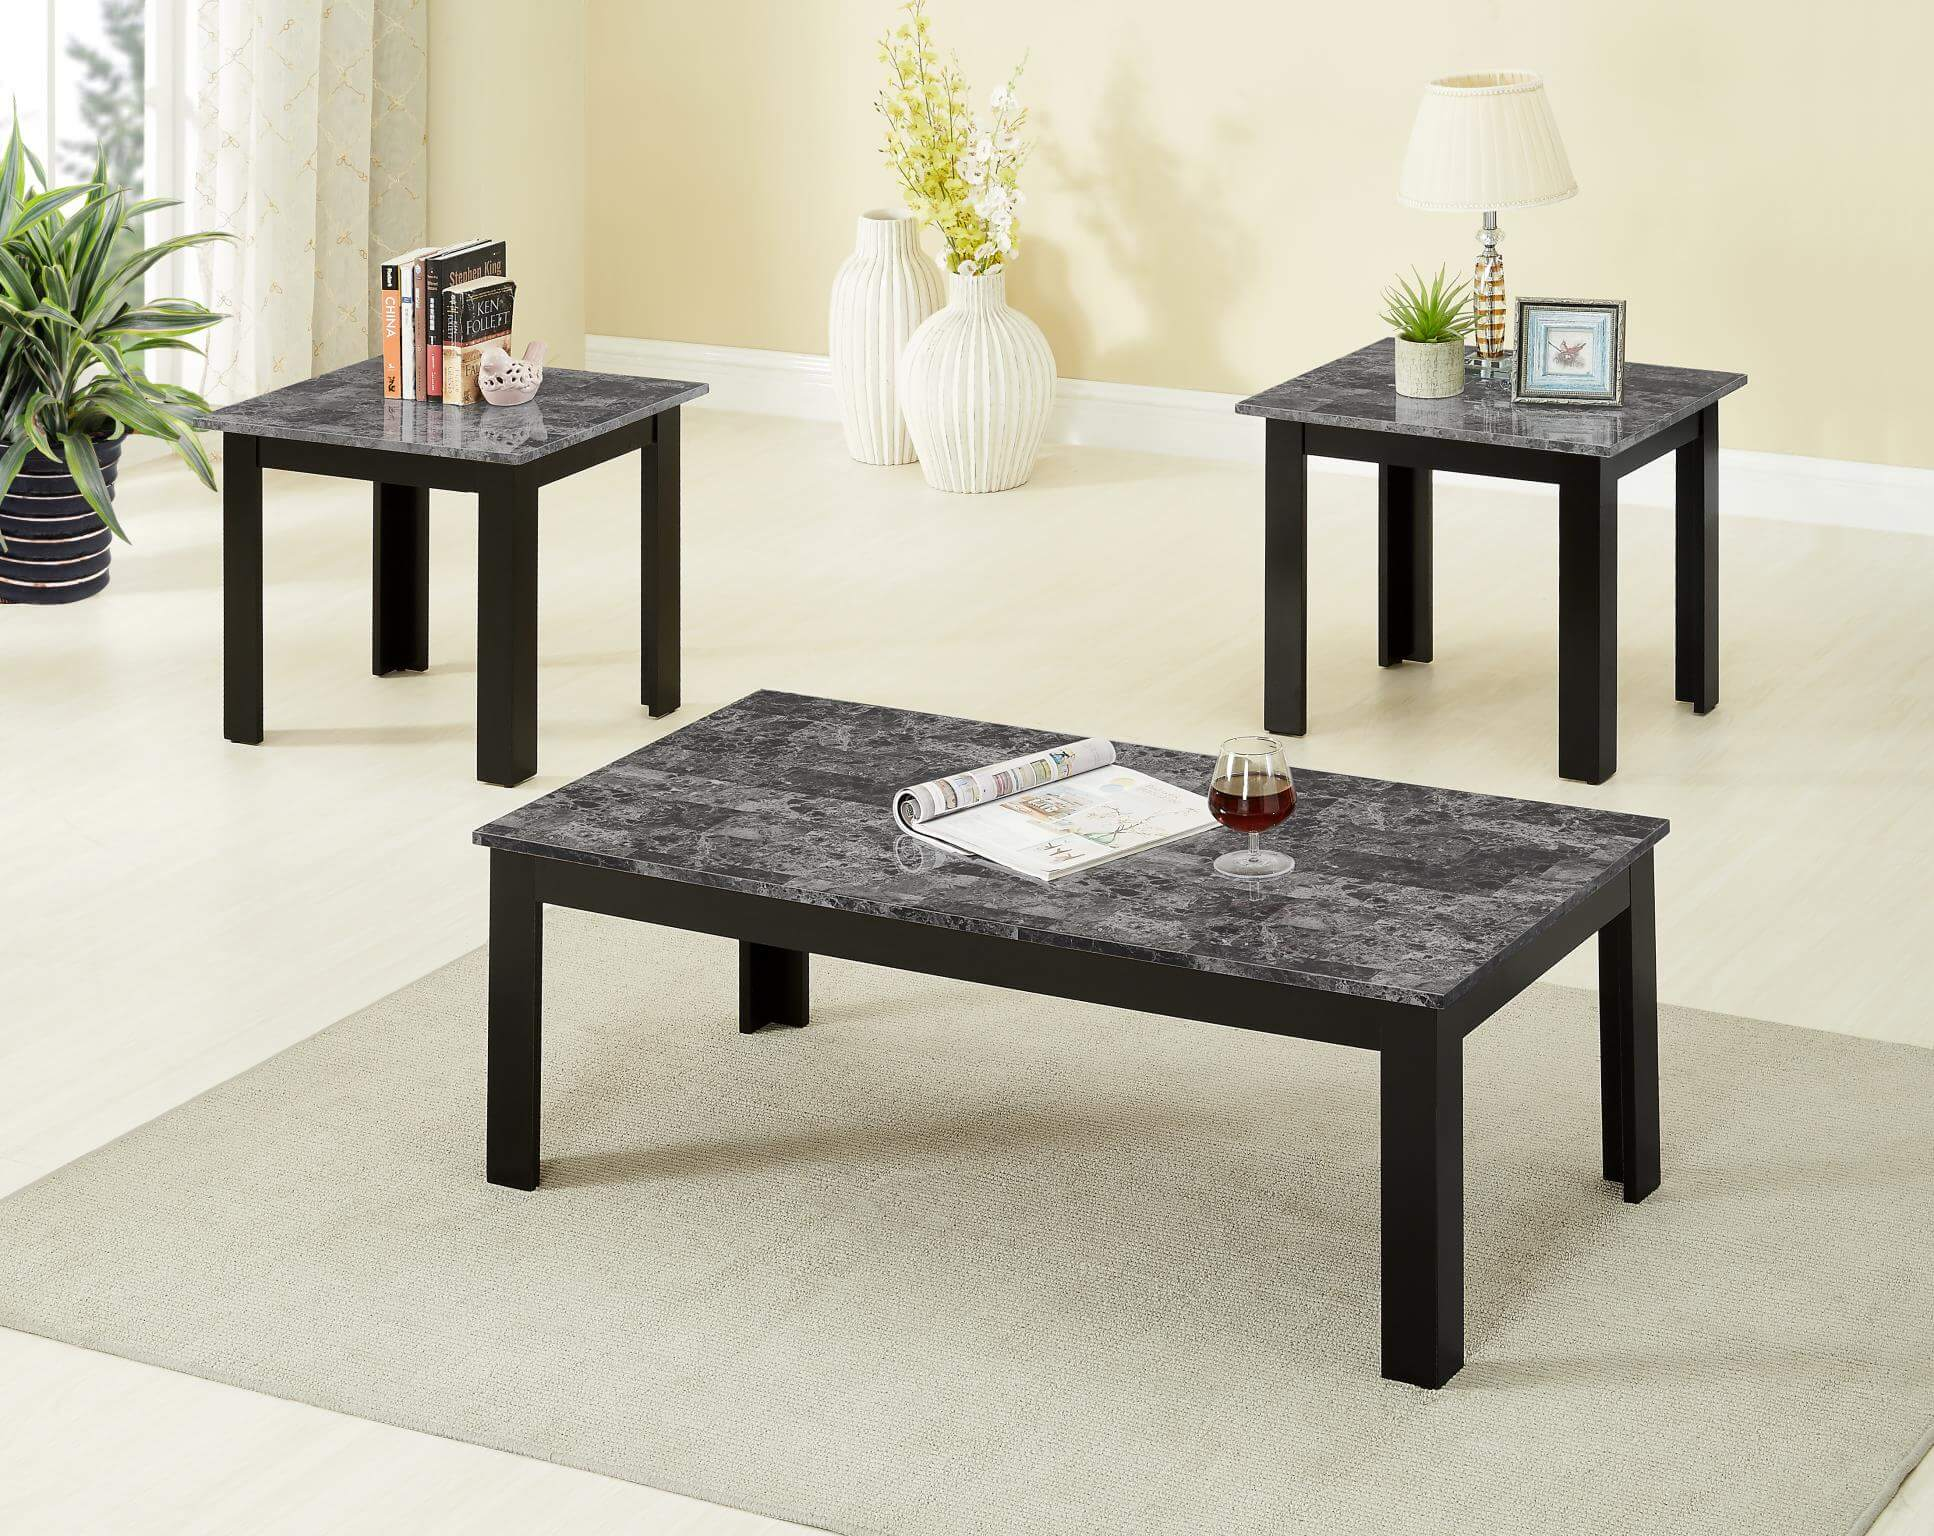 Black End Tables With Drawer 3306g 3 Piece Black Faux Marble Coffee And End Table Set By Global Trading